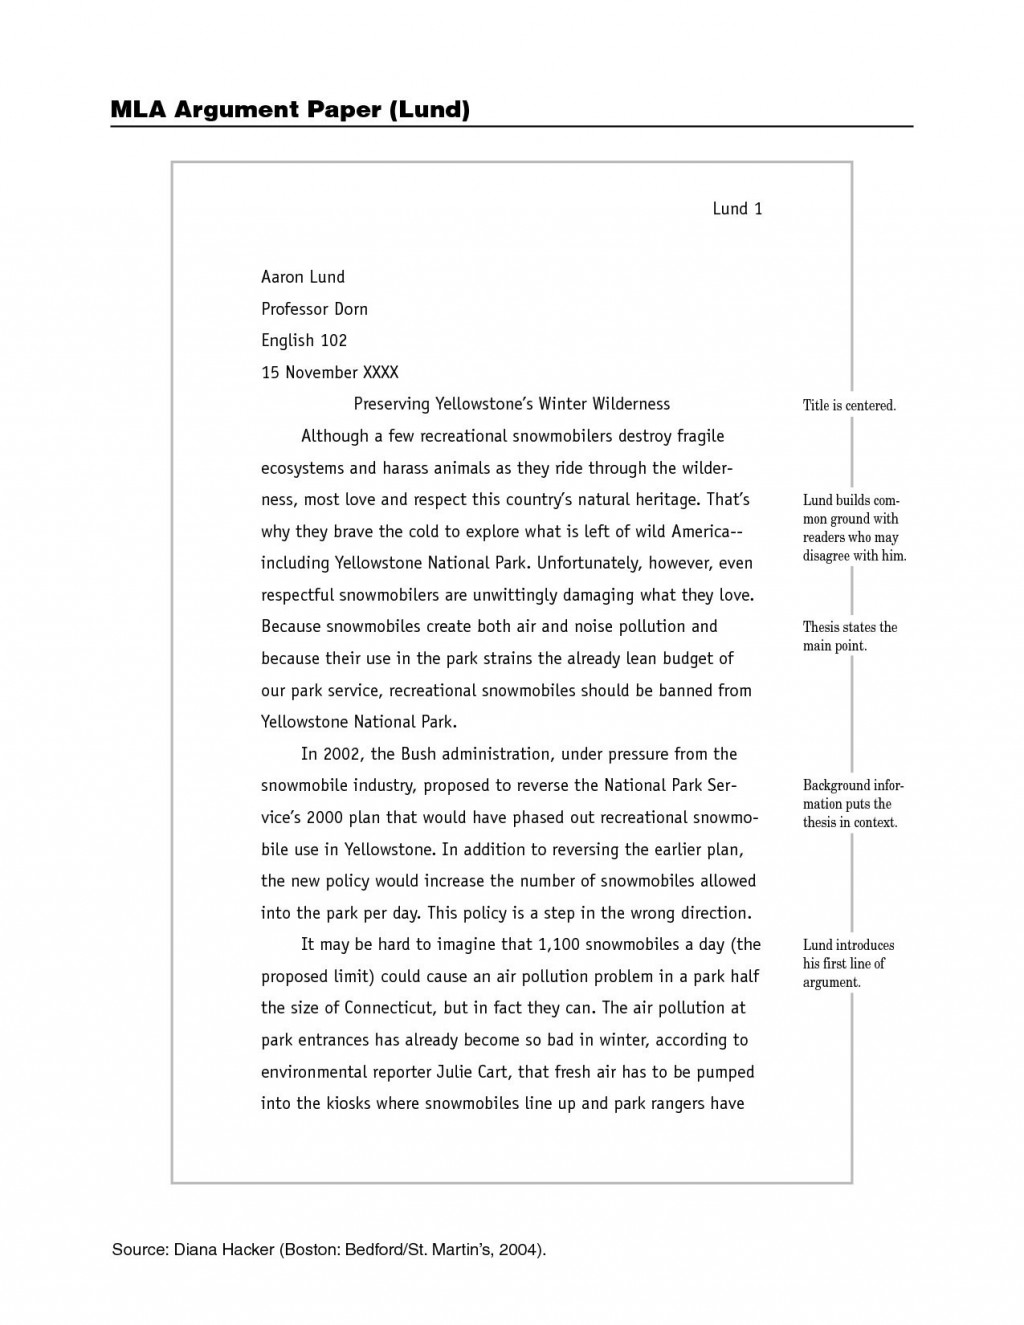 015 Mla Format Essay Writing Save Example Of In Goal How To Set Your Paper Goodwi Up My An Research On Word What Is For Unique Essays Proper 8 Large